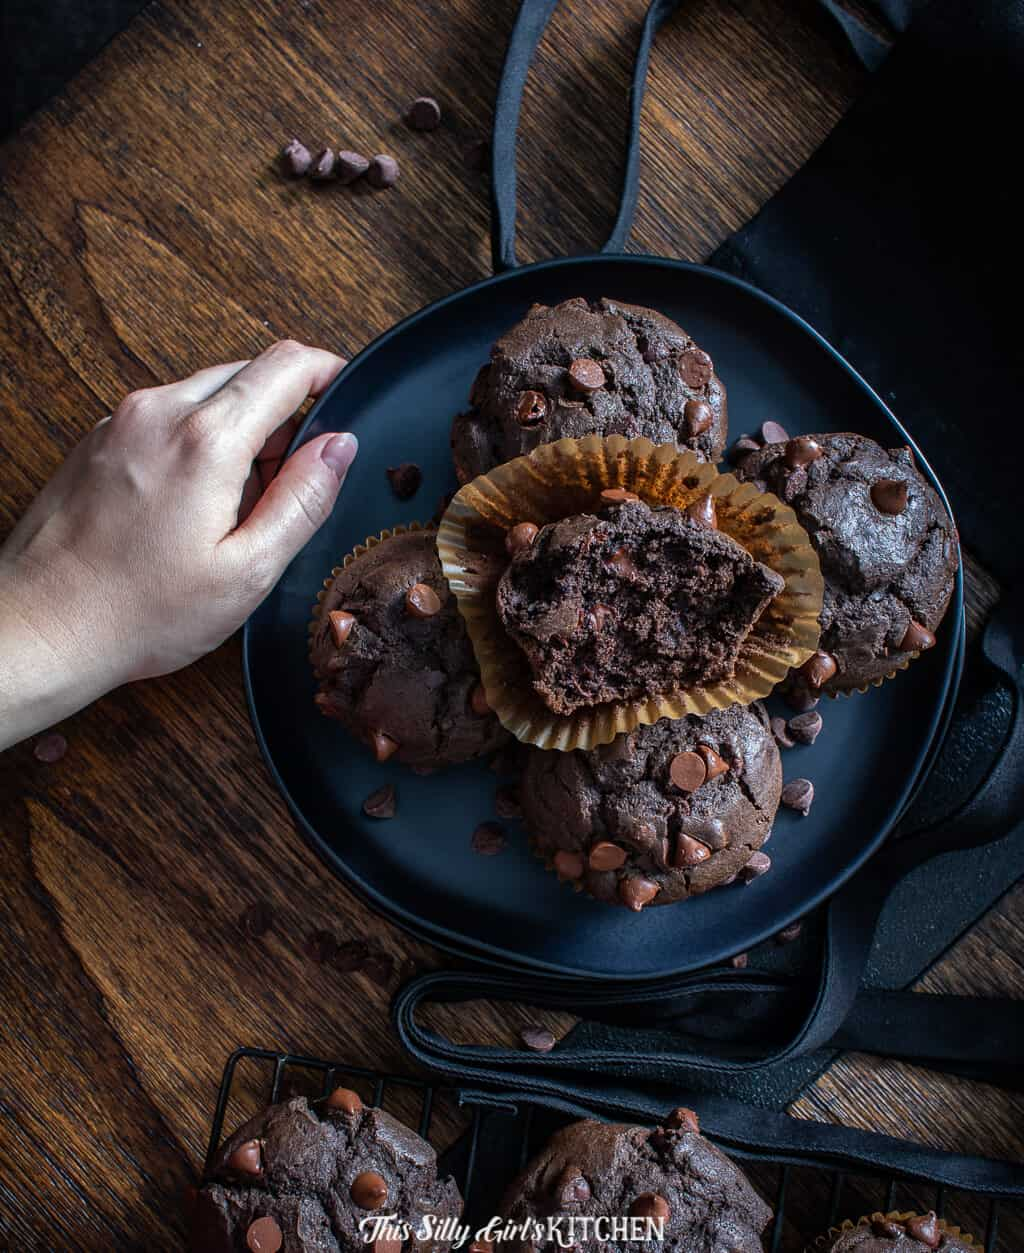 Hand holding plate of muffins with one muffin in liner broken in half